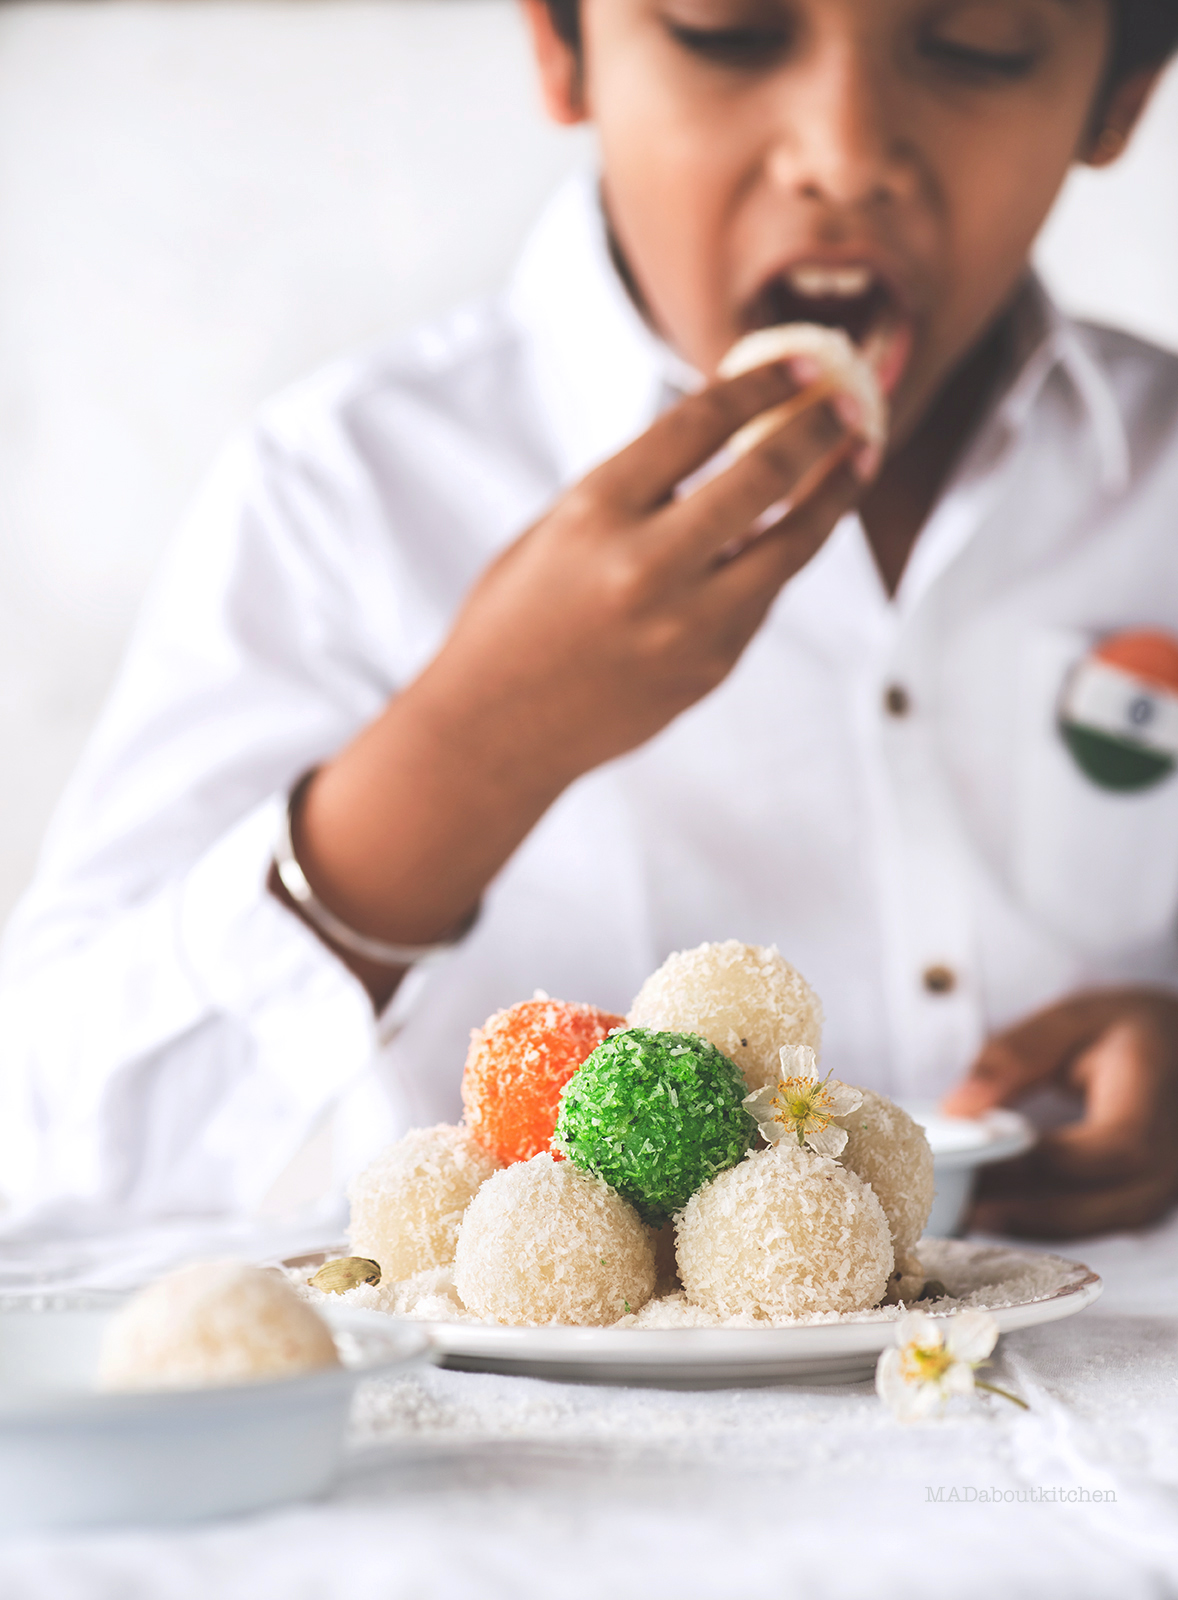 Coconut laddoo is soft laddoo made using fresh or desiccated coconut which is super simple to make and can be made using either sugar or condensed milk.